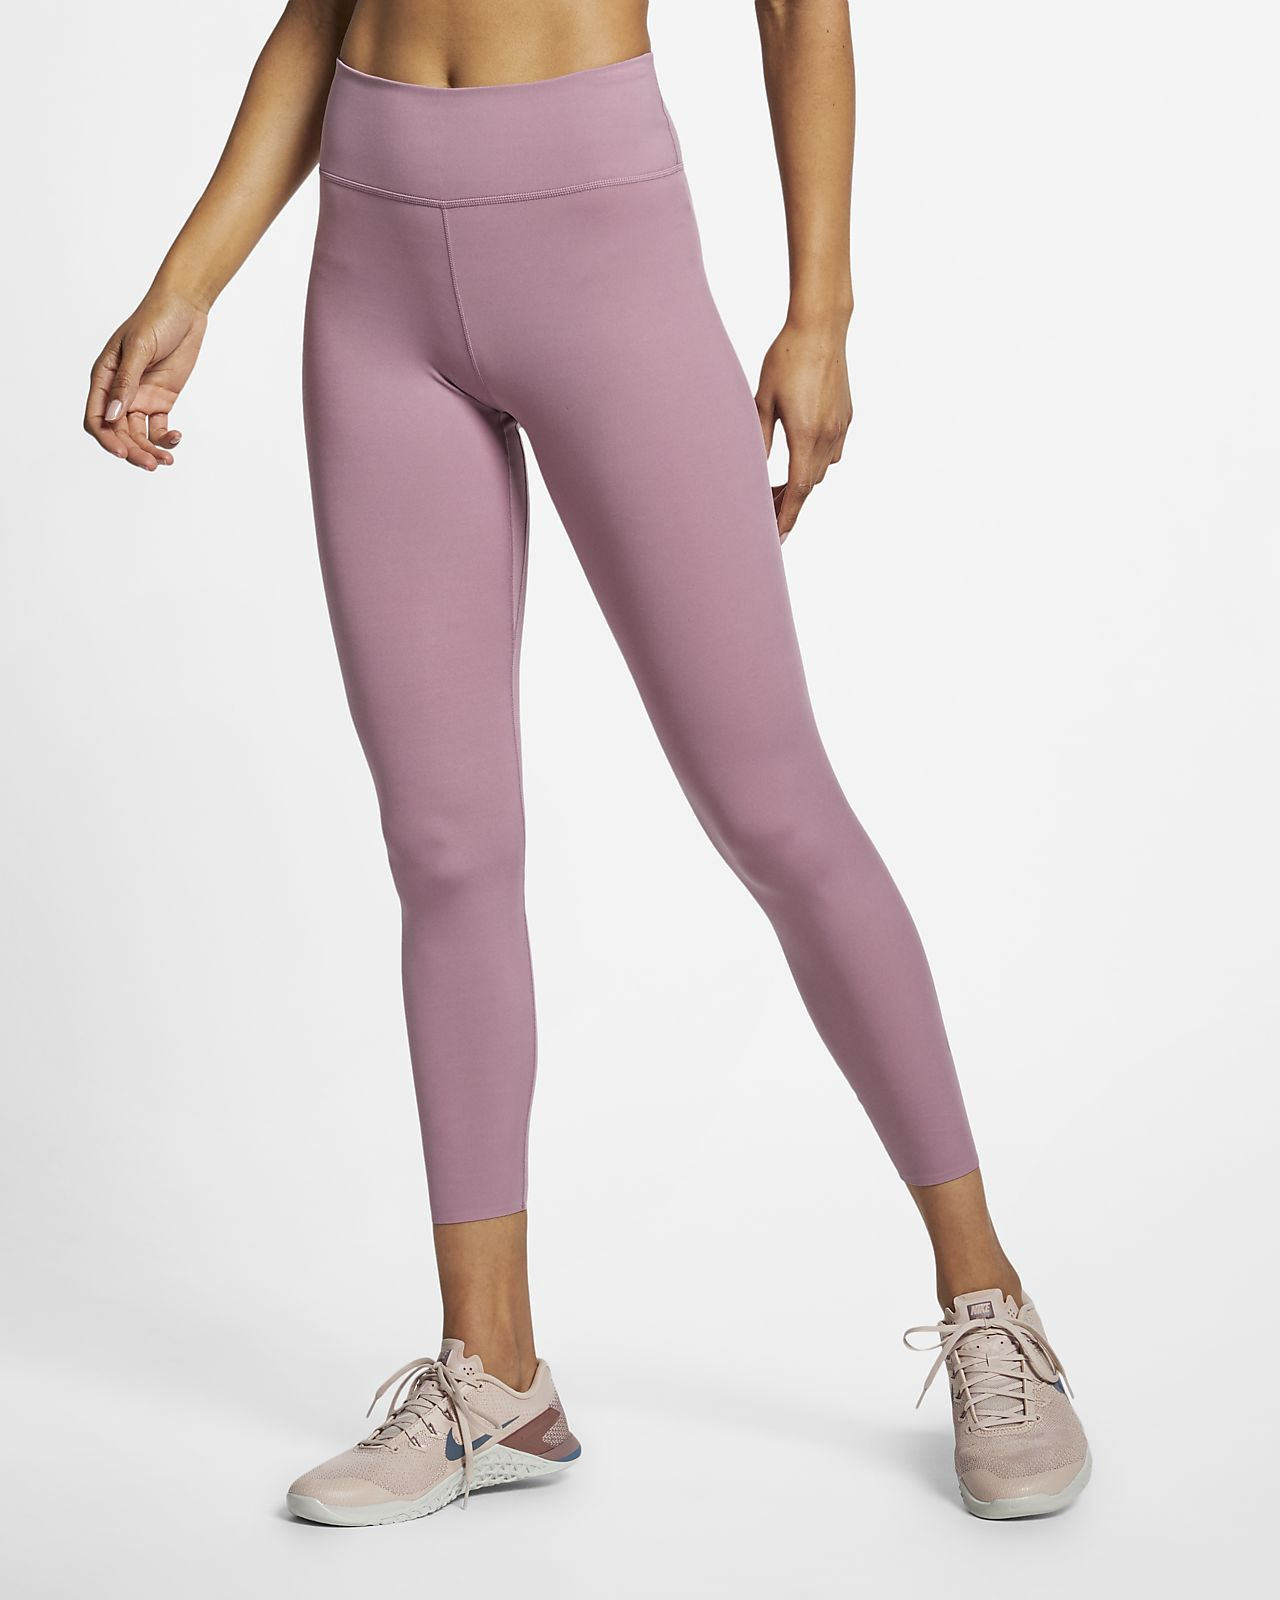 0d09eb9153 Nike One Luxe Women's 7/8 Tights / Pink Tights / Yoga Tights / Barre  Thights / Workout Wear / Athletic Wear / Style by Jamie Lea